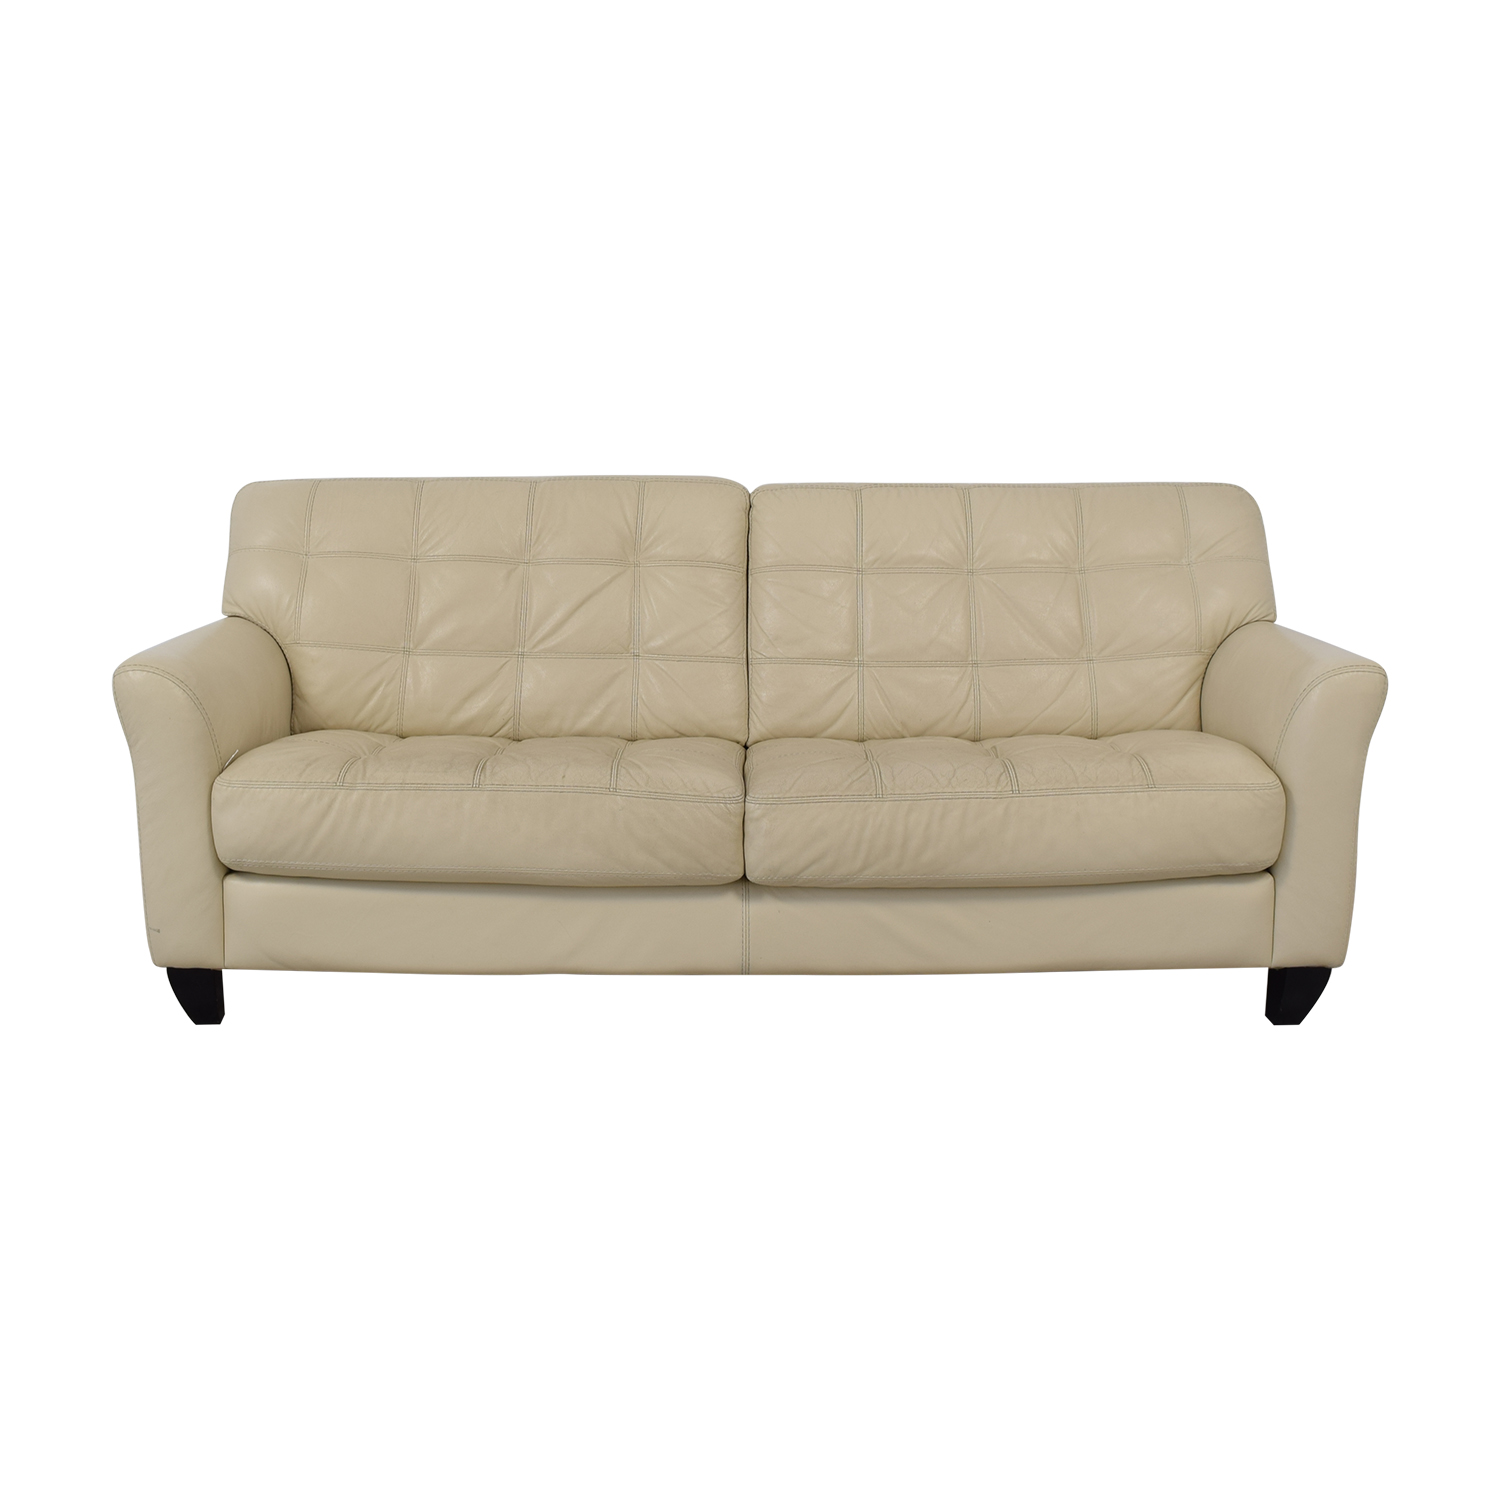 White Leather Couch 54 Off Chateau D Ax Chateau D Ax Milan White Leather Couch Sofas